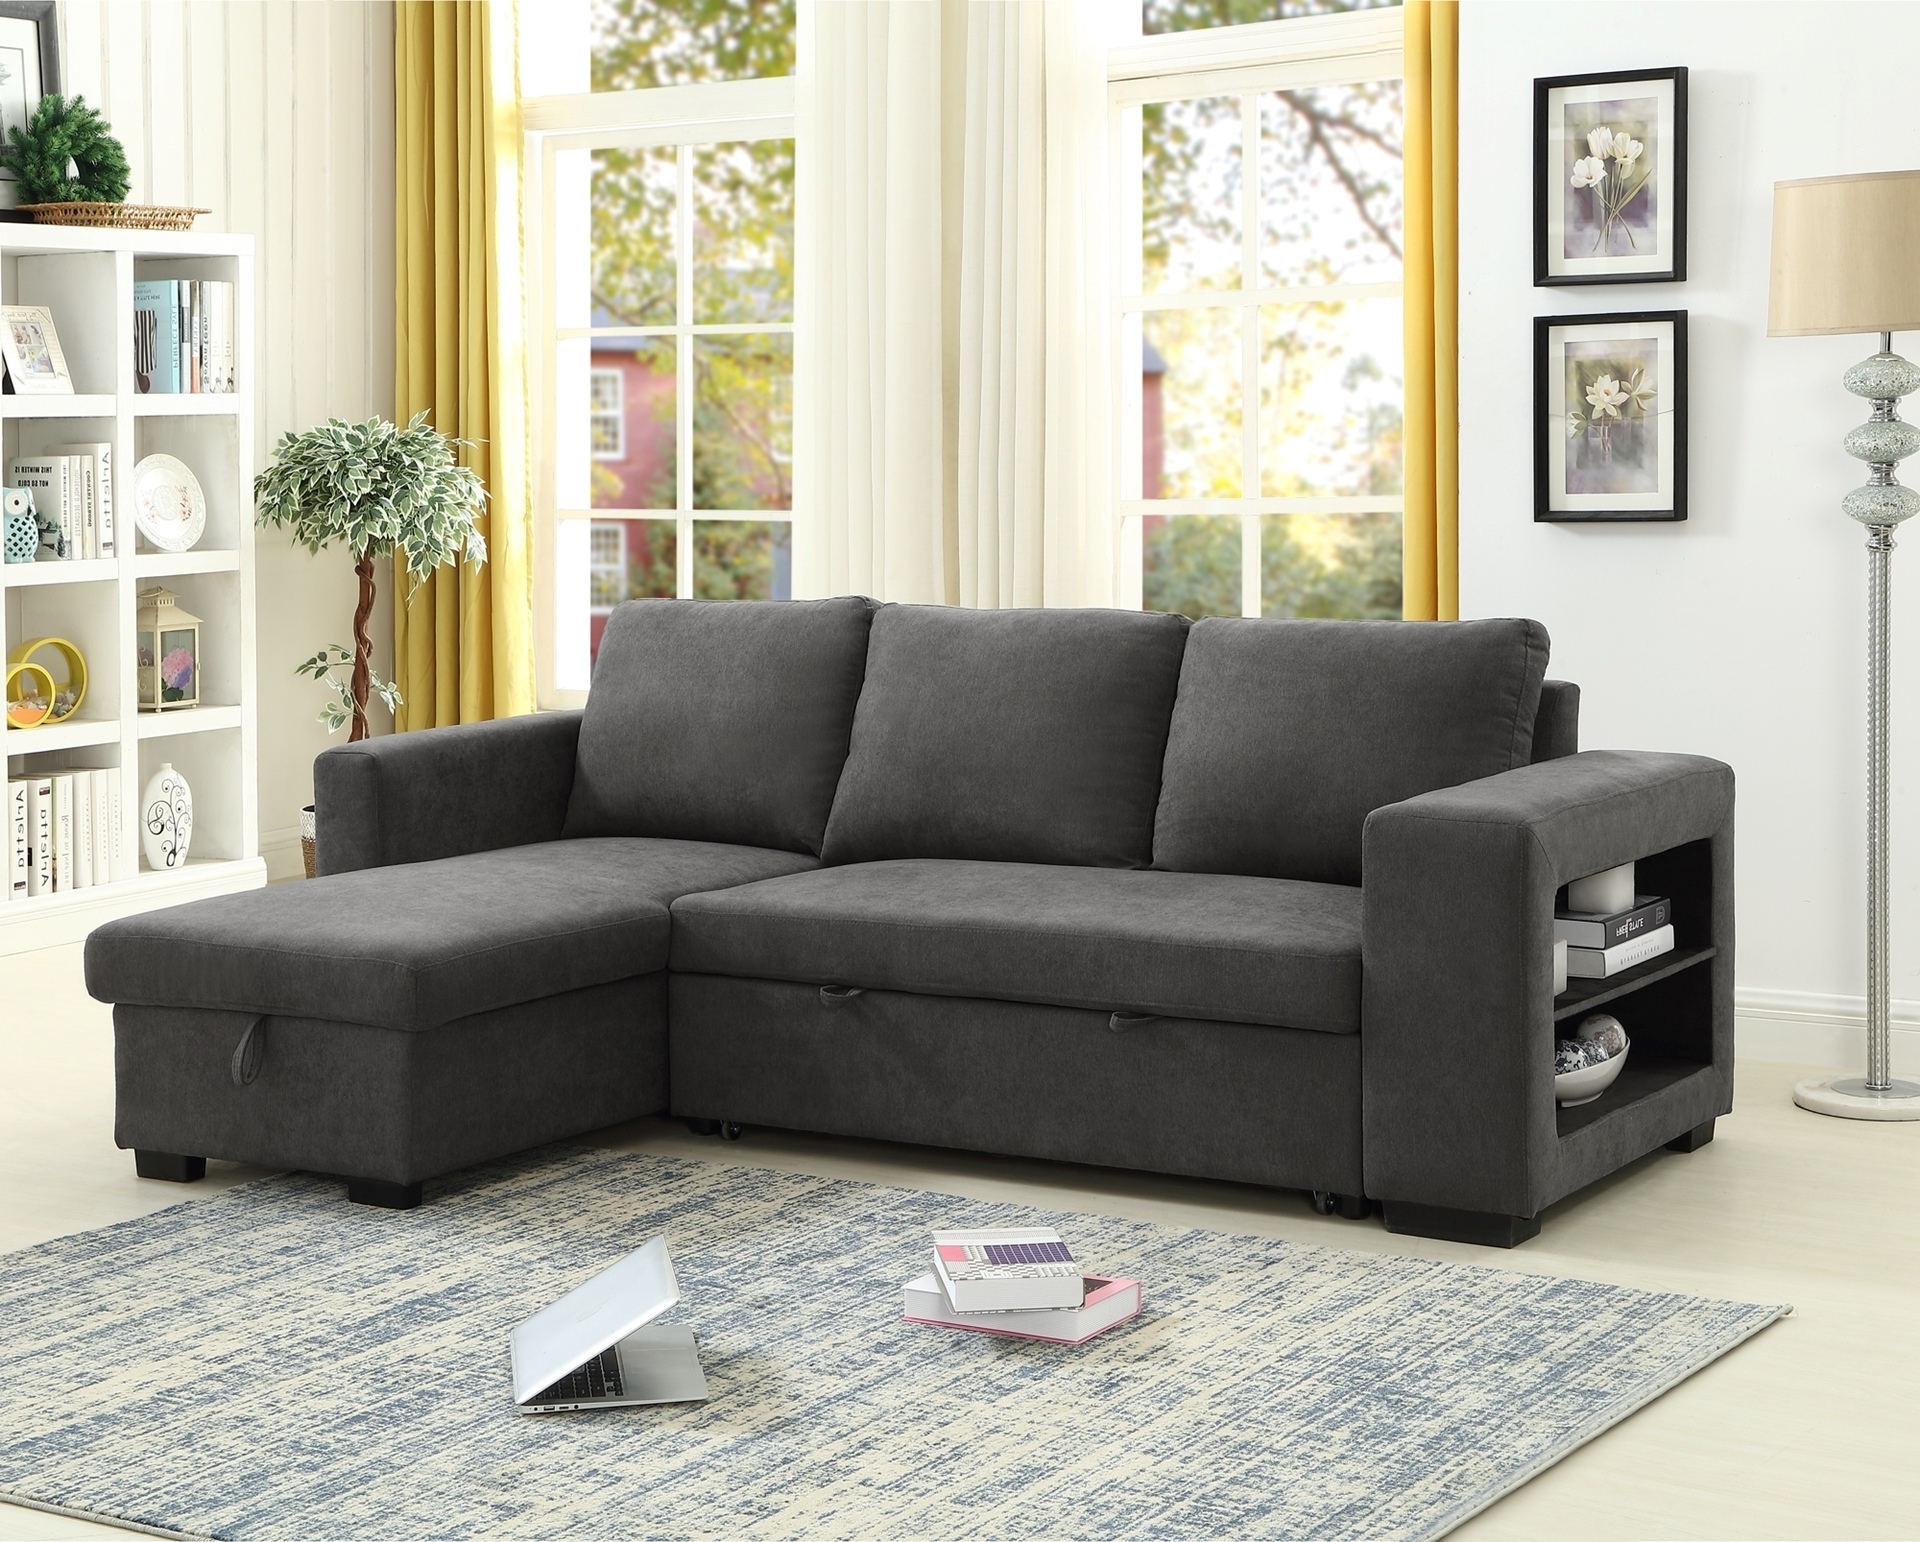 Lucena Reversible Sectional Sofa/sofa Bed With Storage Within Latest Palisades Reversible Small Space Sectional Sofas With Storage (View 3 of 20)